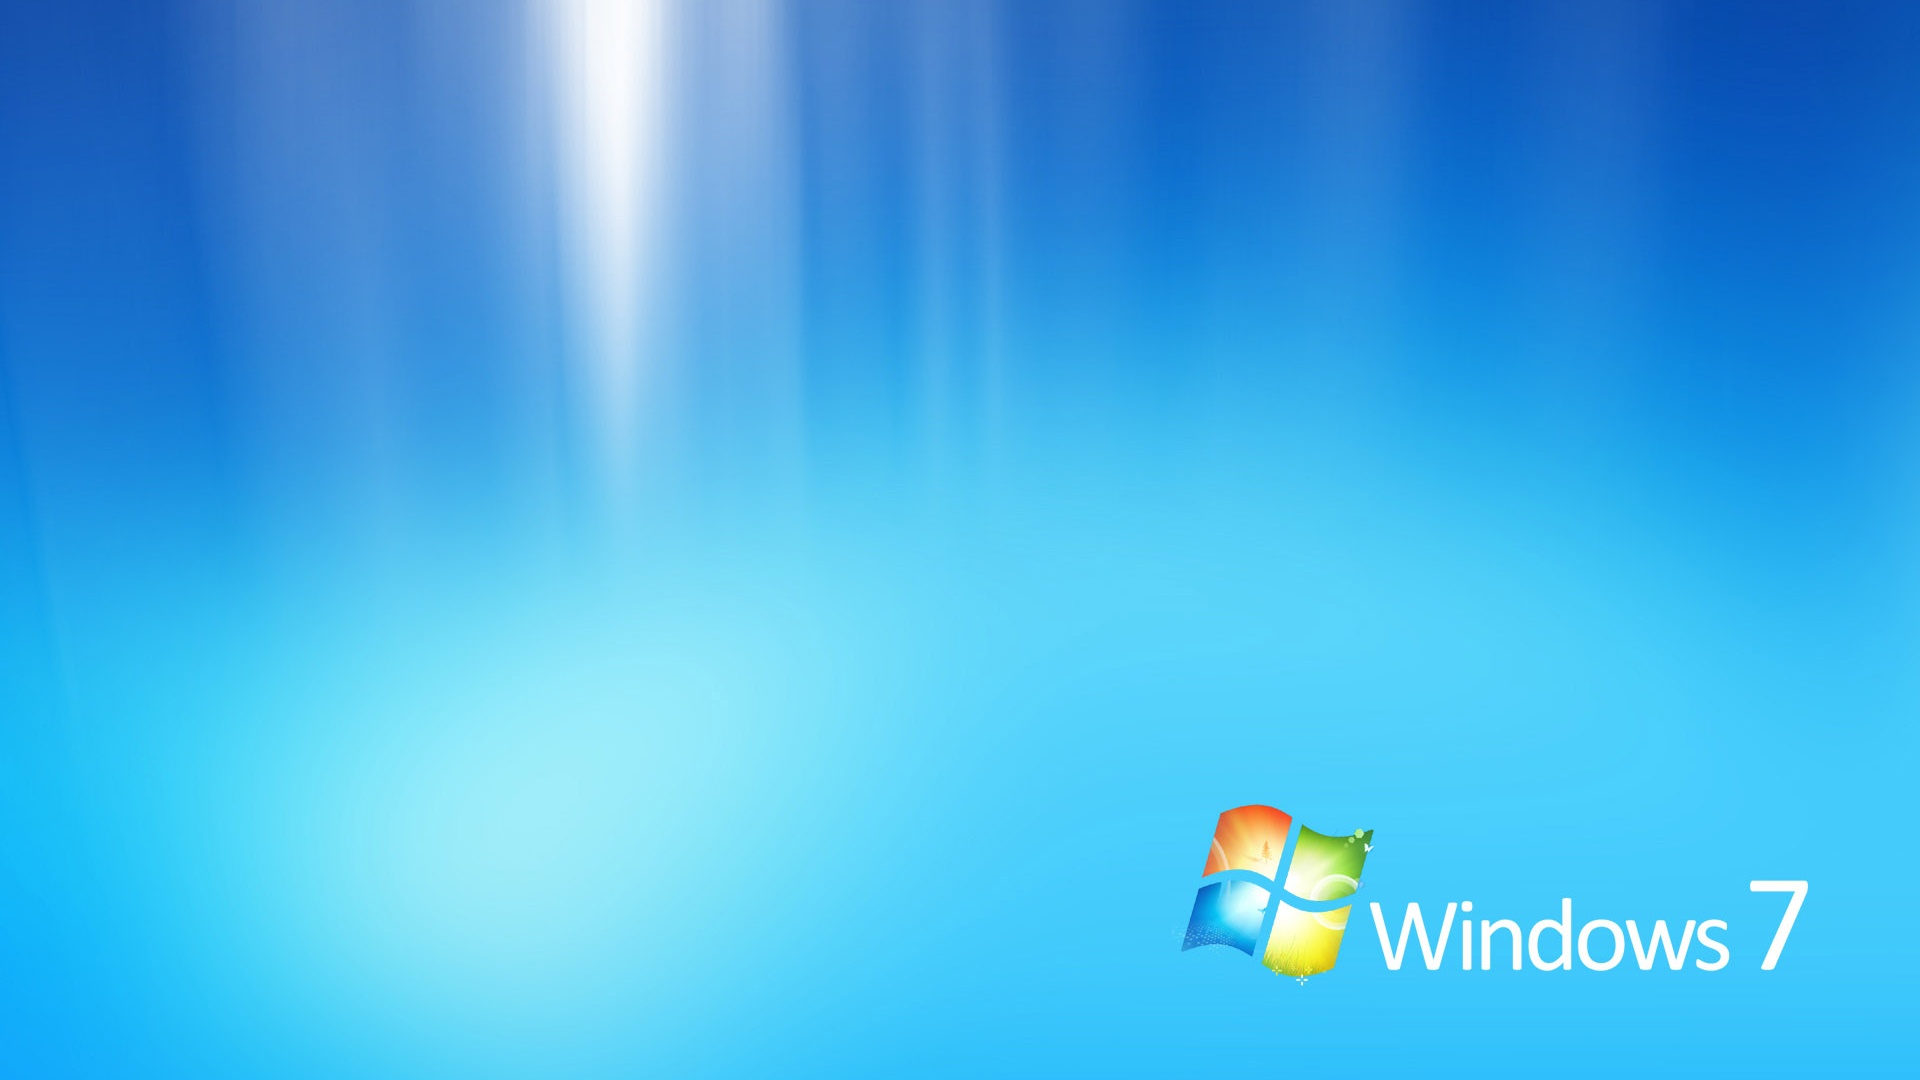 apple desktop wallpaper windows 7 - photo #5